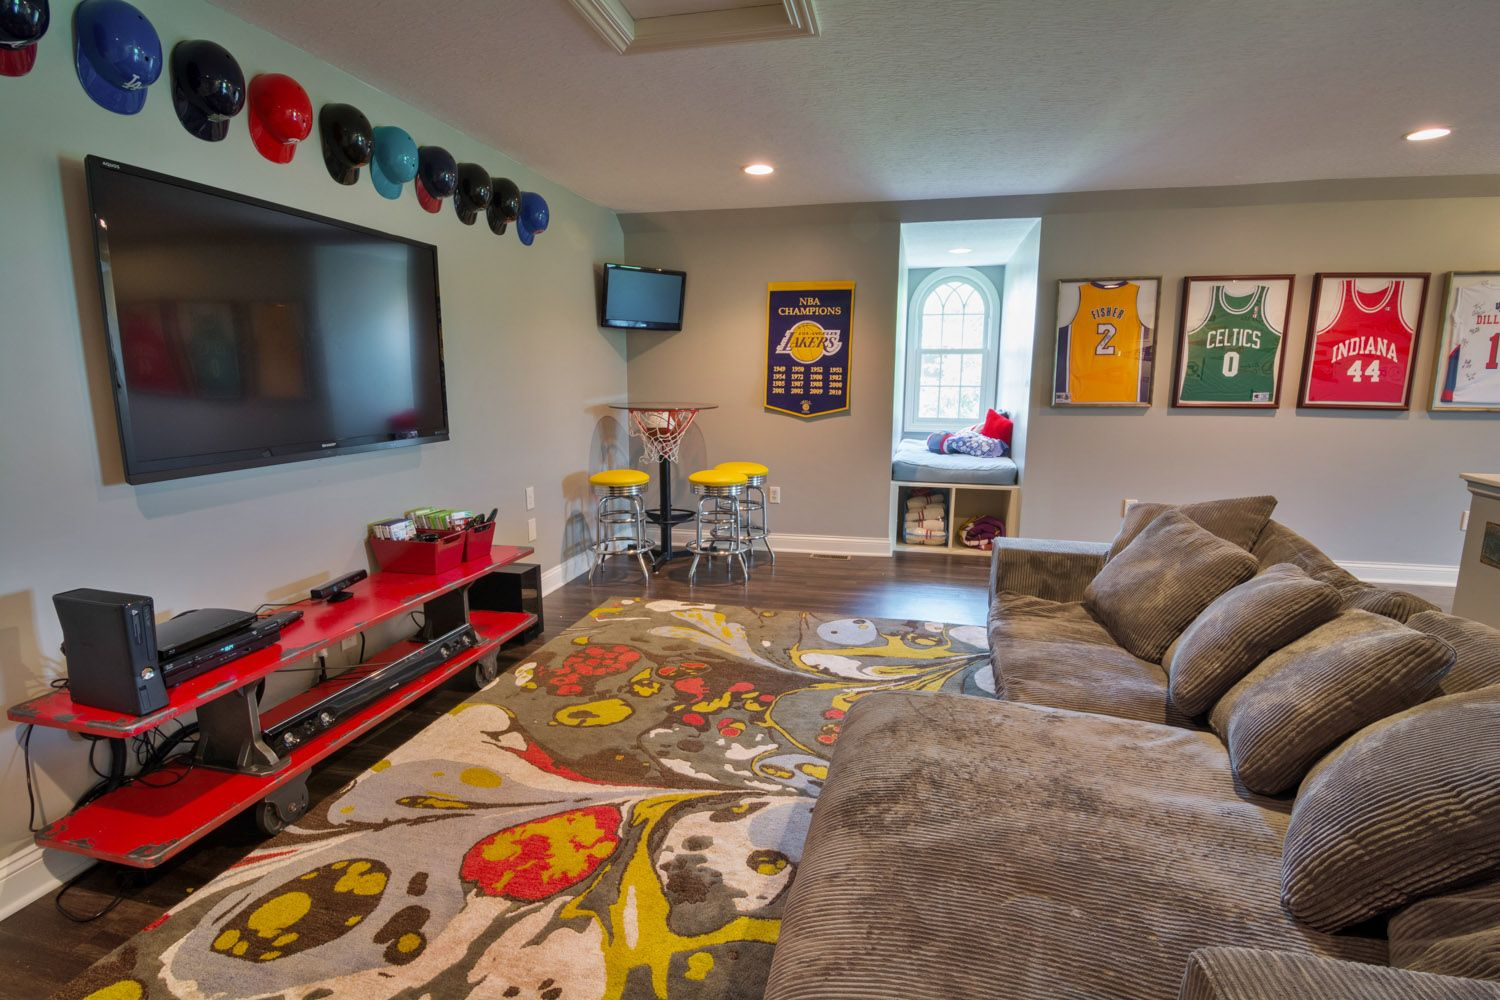 50 Kids Sports Room Photos Of Bedrooms Interior Design Check More At Http Nickyholender Com Kids Sports Sports Room Decor Cool Boys Room Kids Sports Room